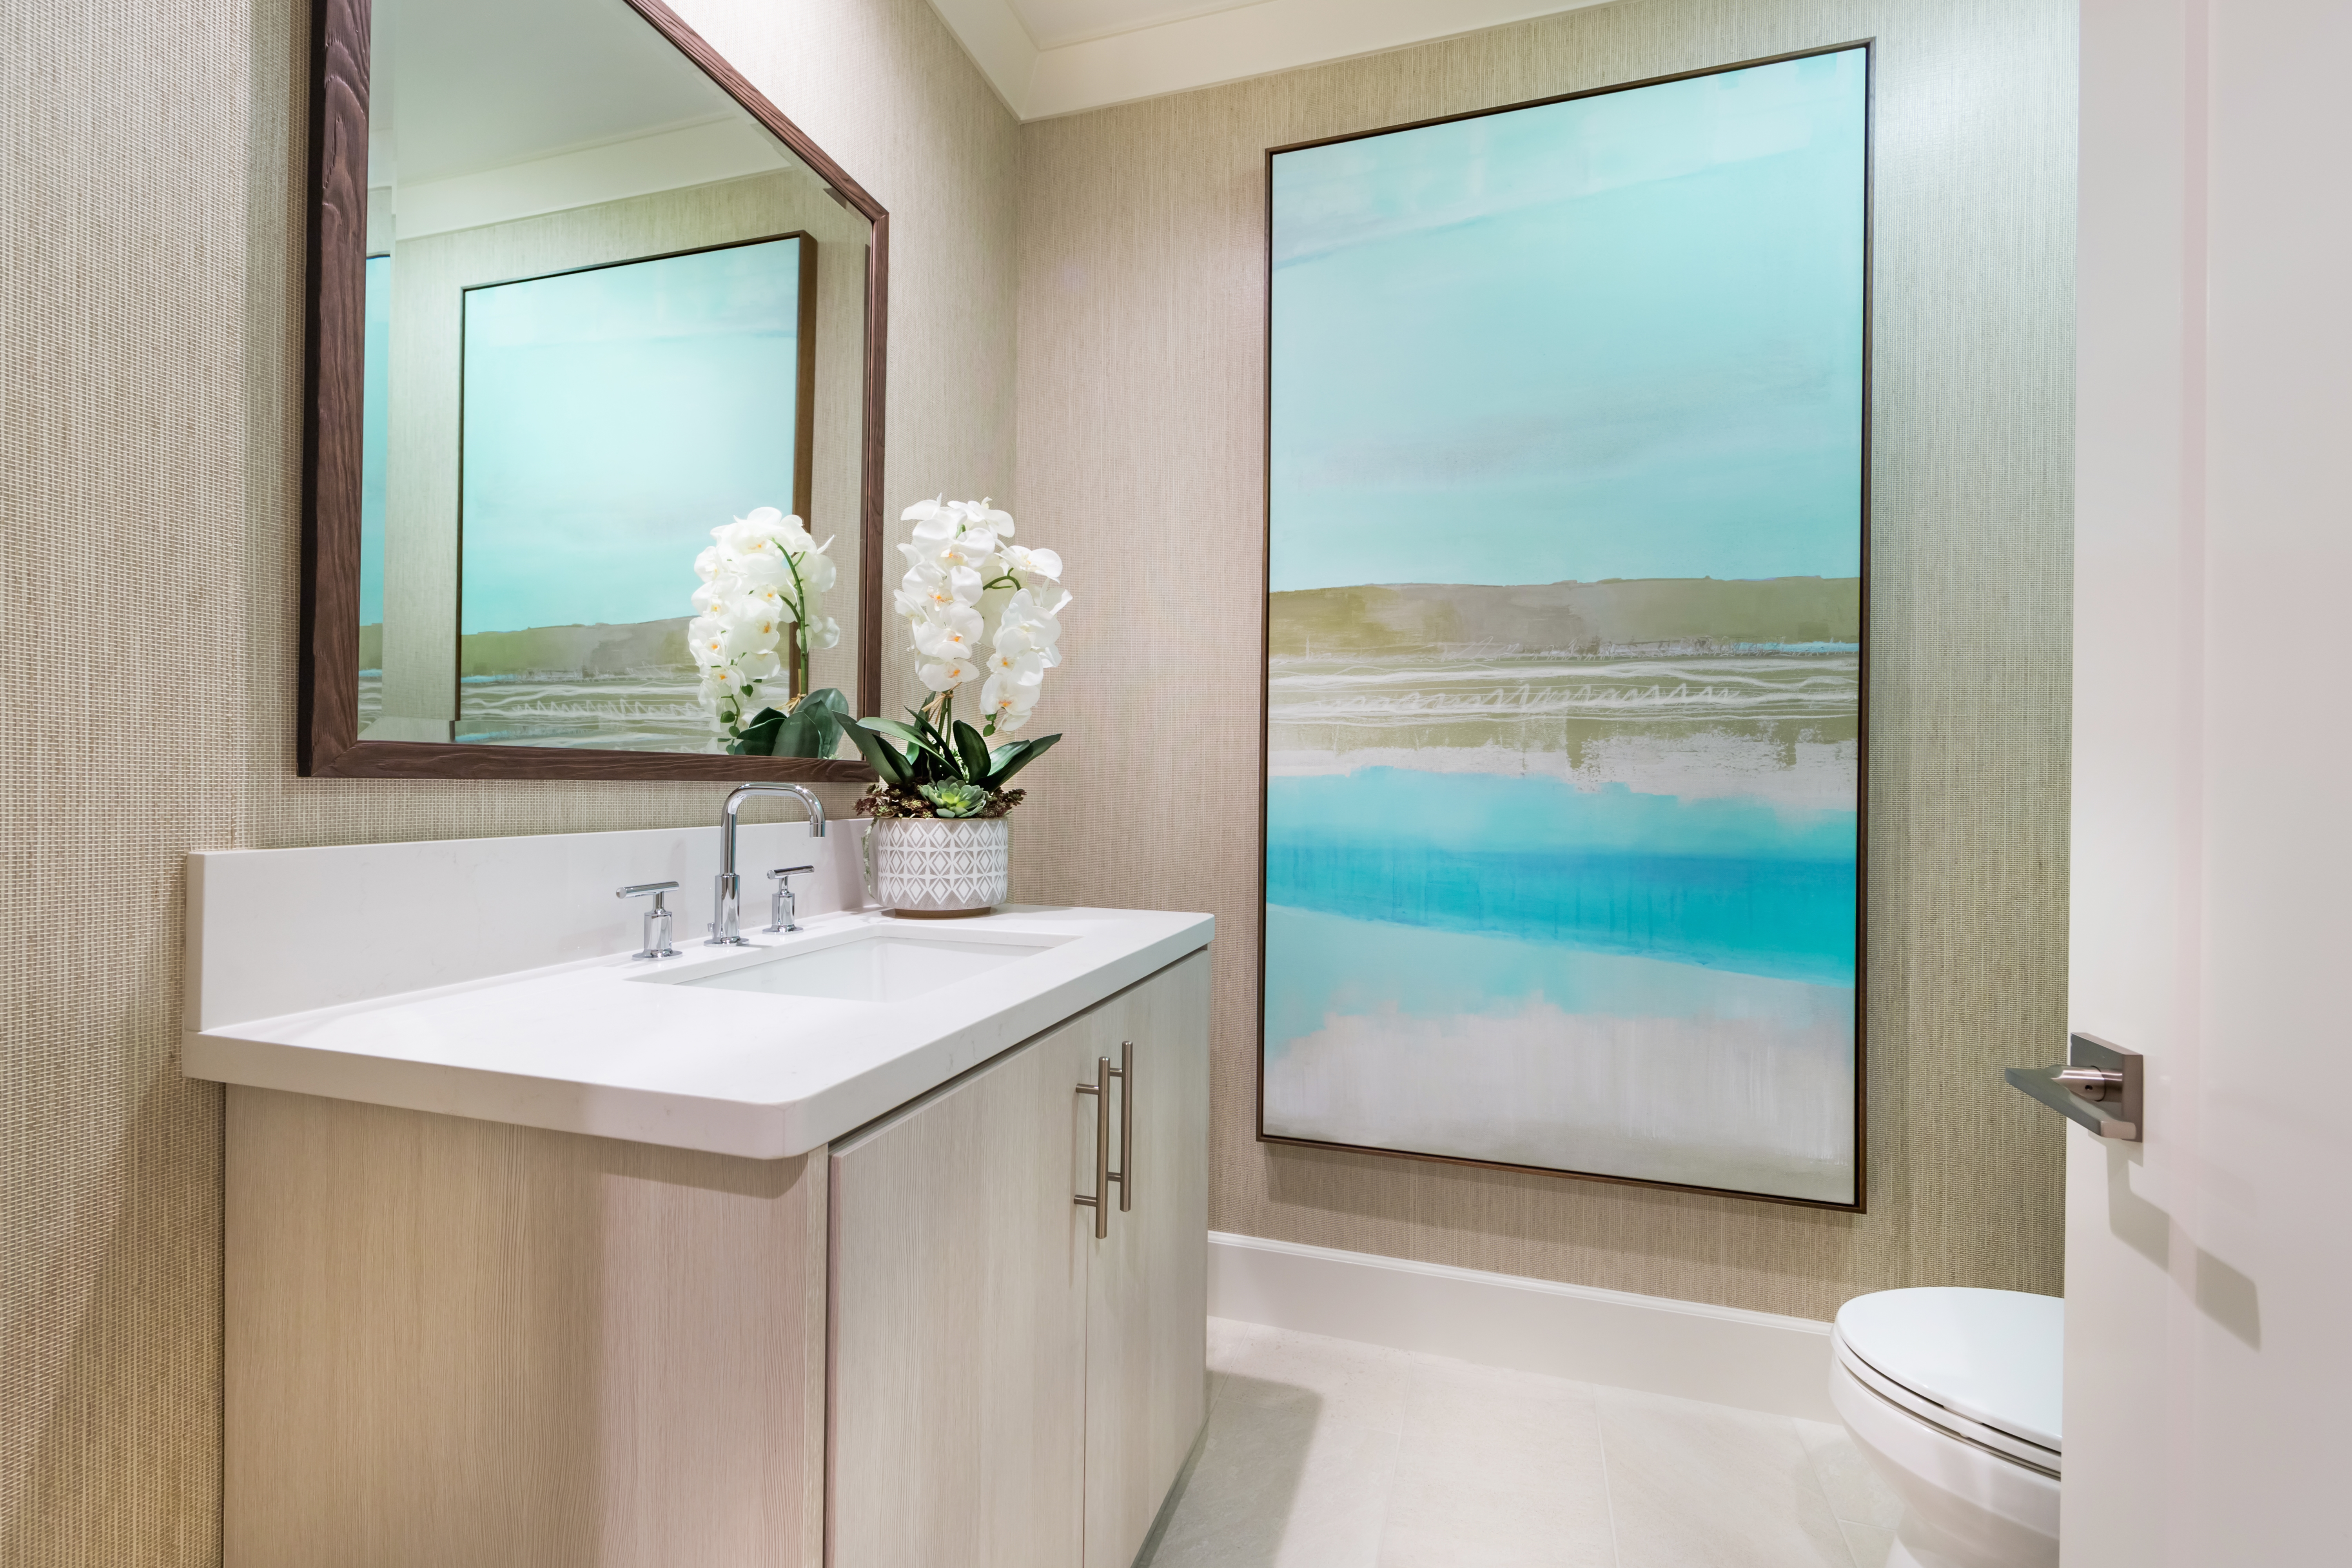 Powder Room at Verdi Residence 1 in Irvine